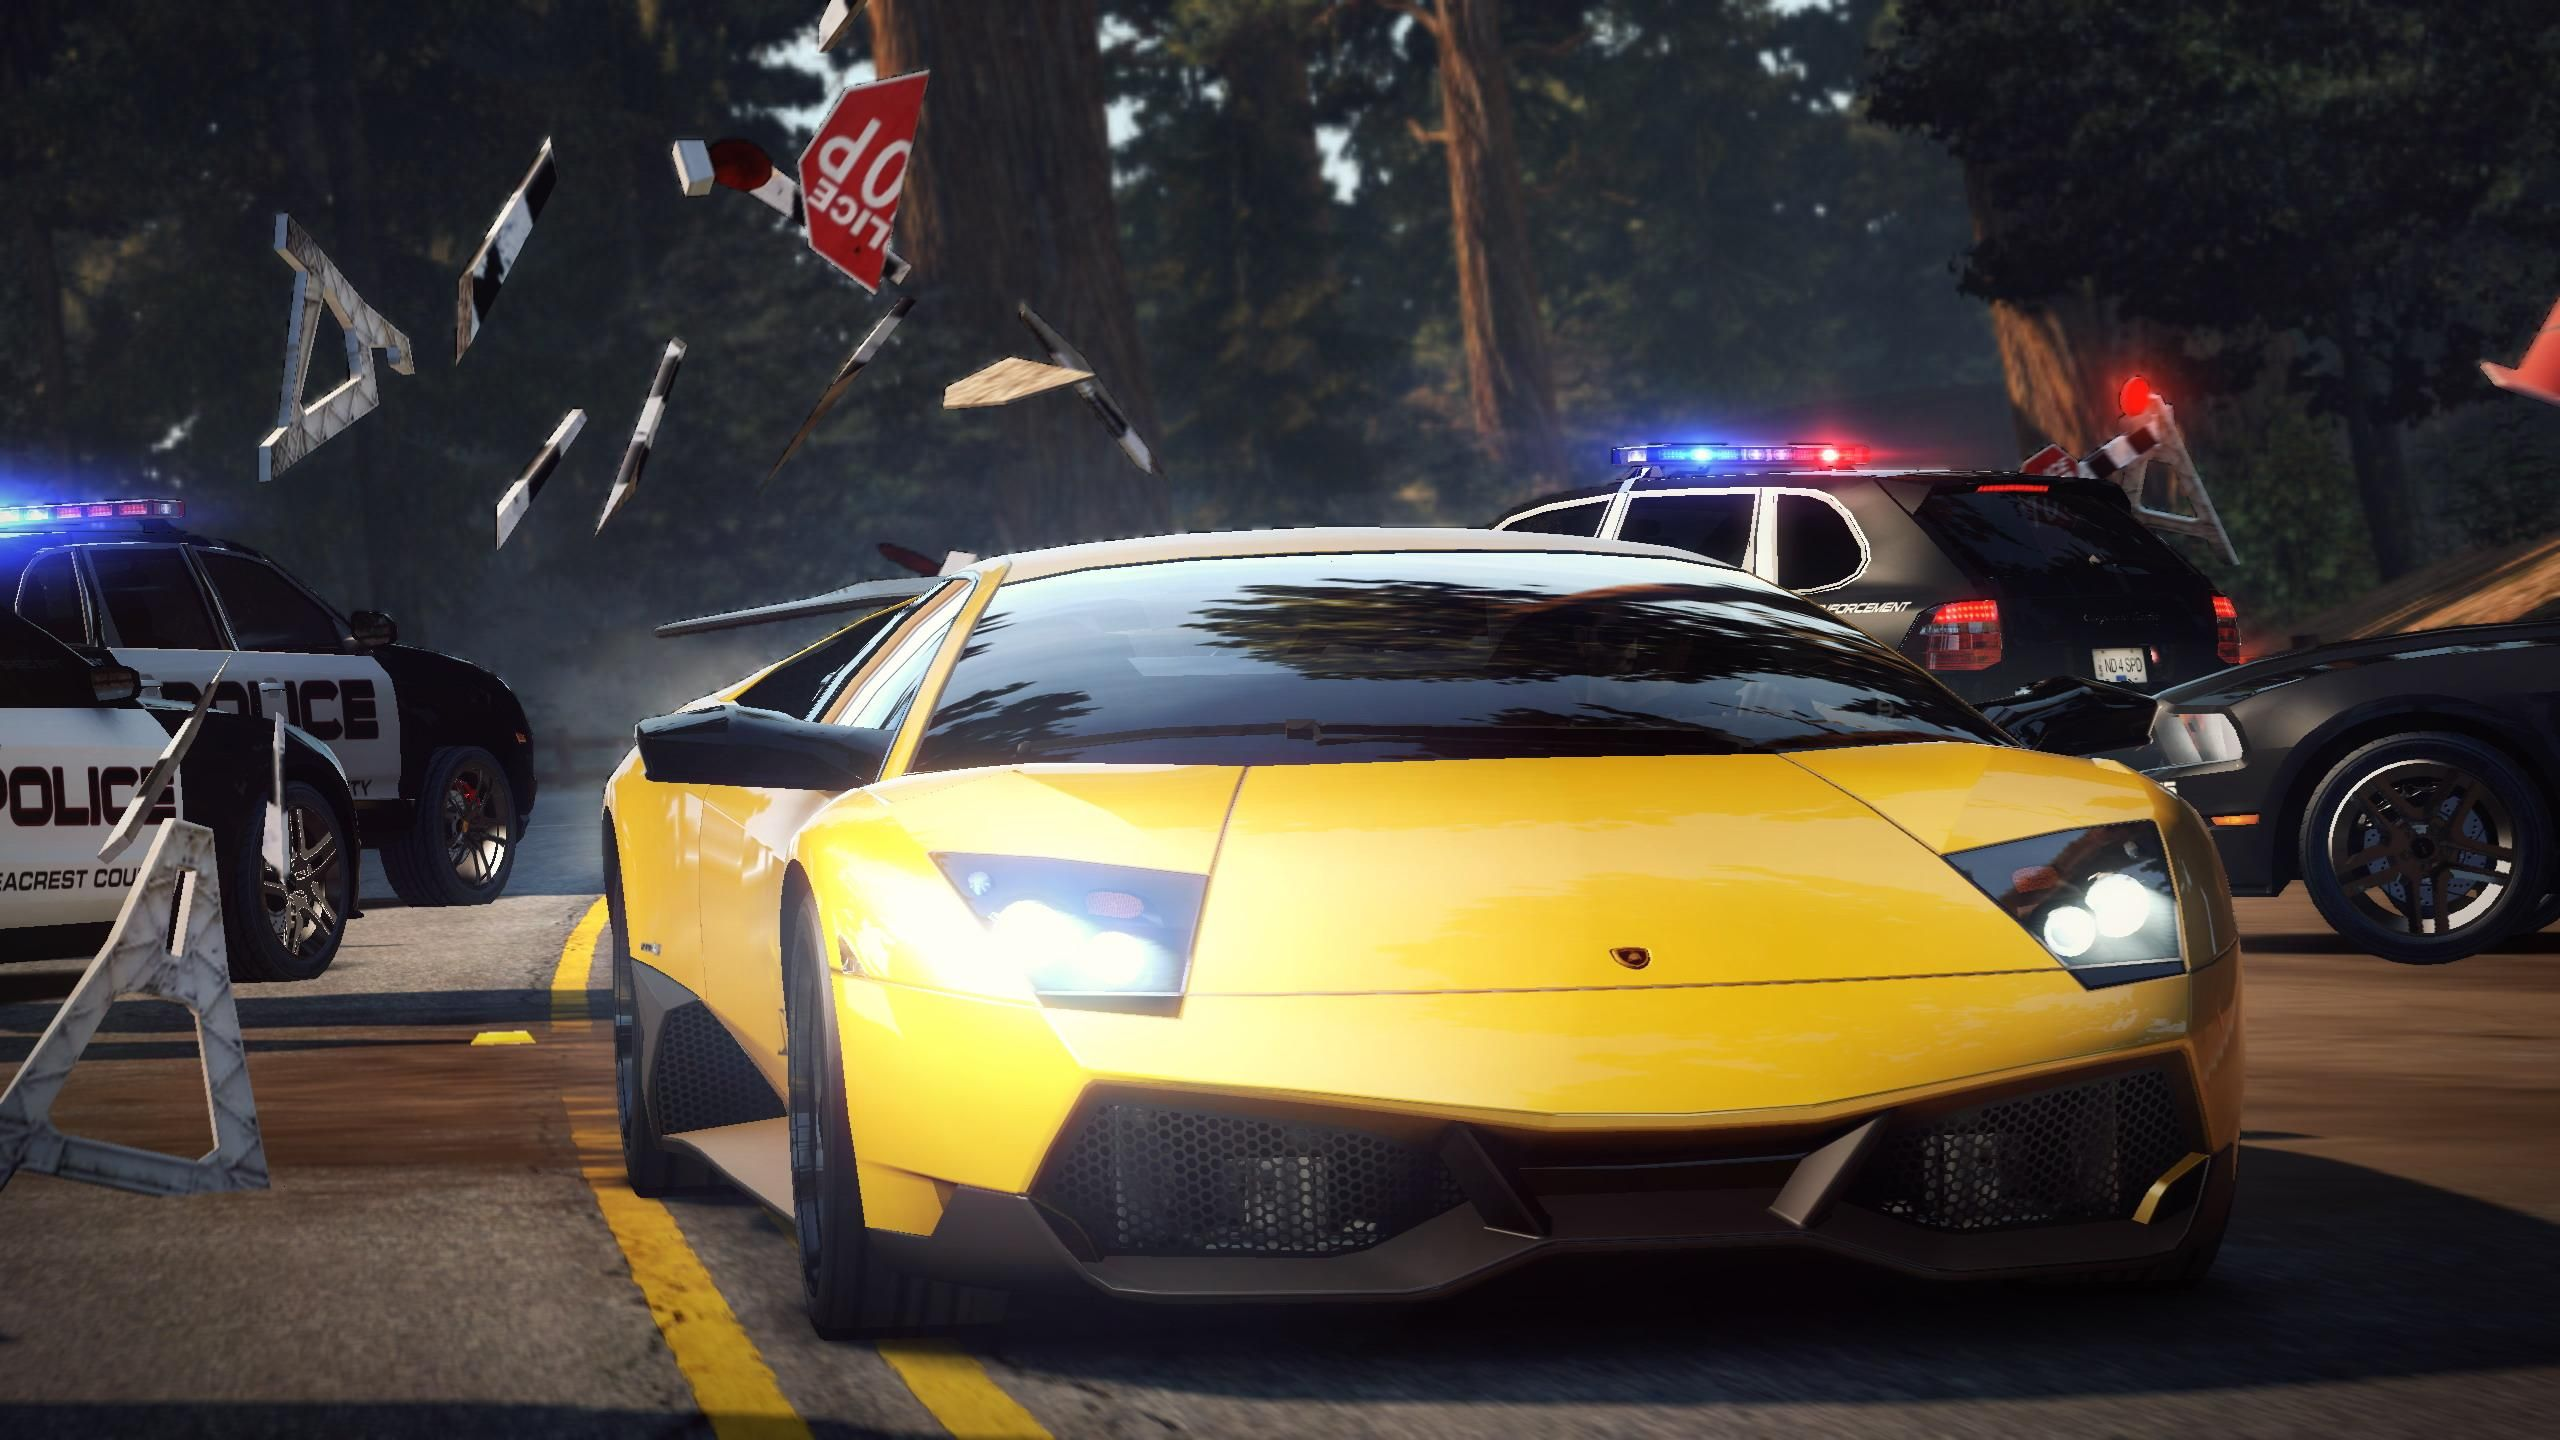 3 High Resolution Images/wallpapers Of Lamborghini Reventon In Latest Need  For Speed Hot Pursuit Game :